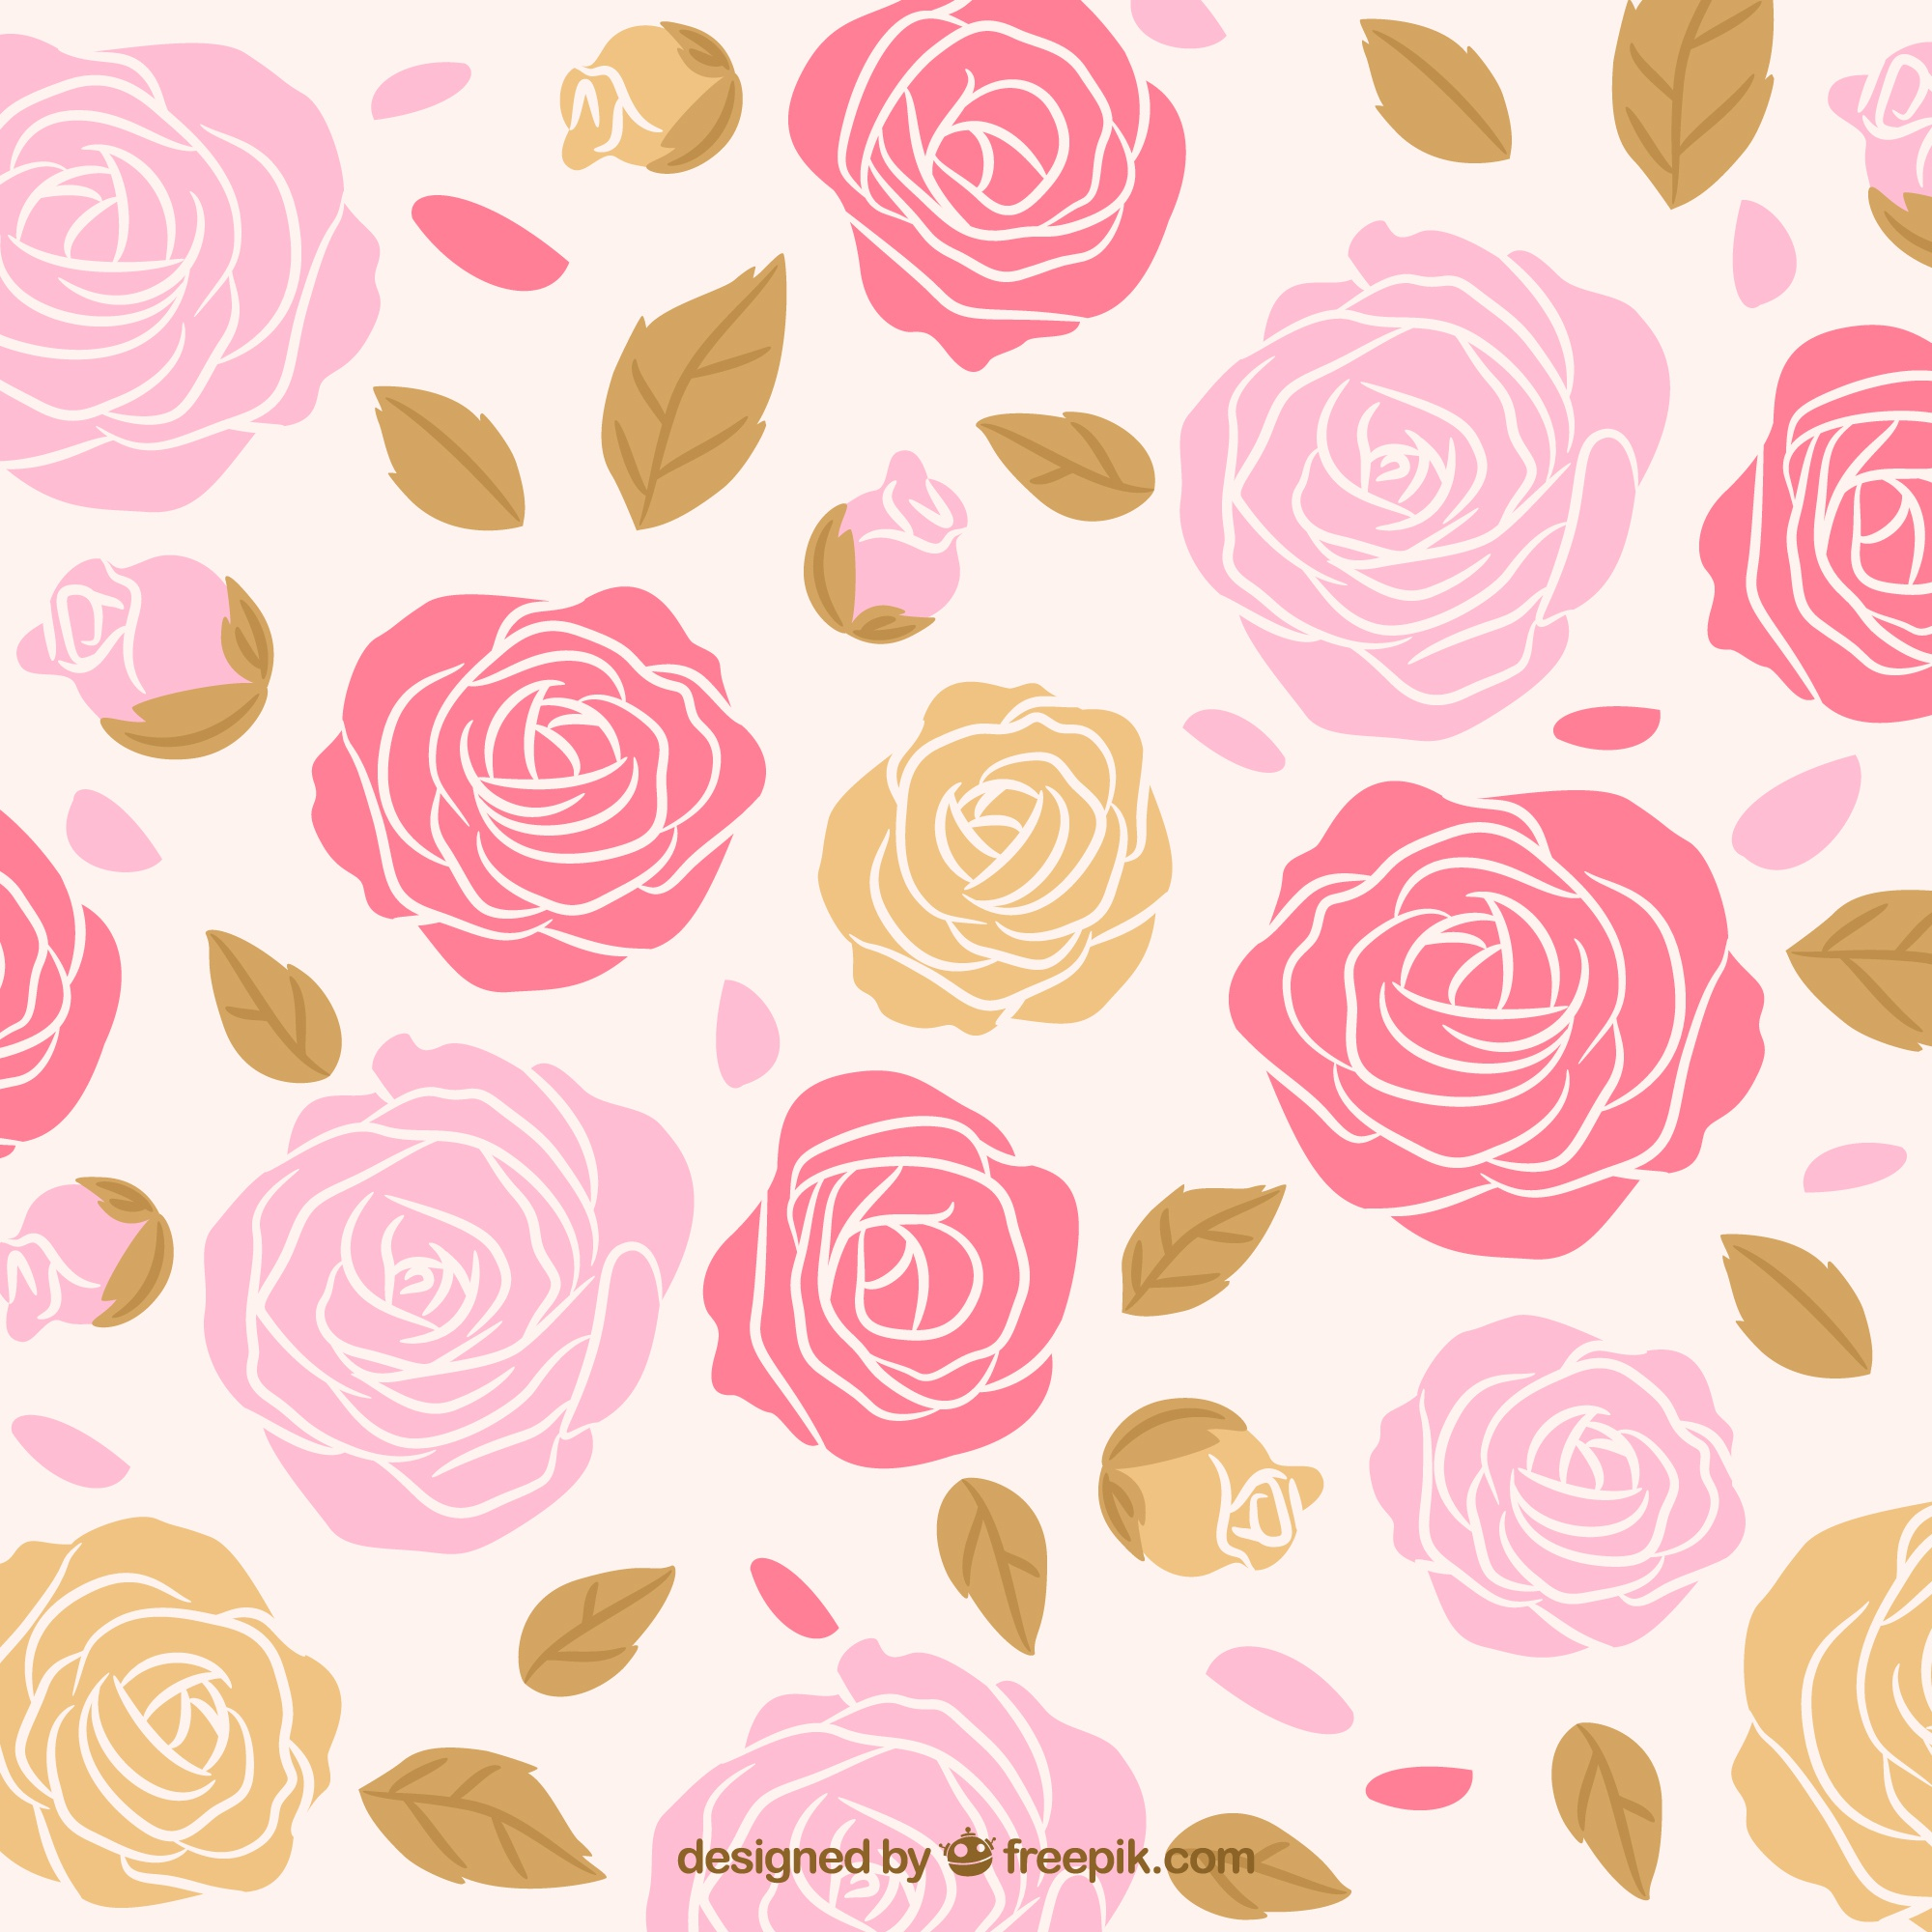 Hand drawn roses background with leaves